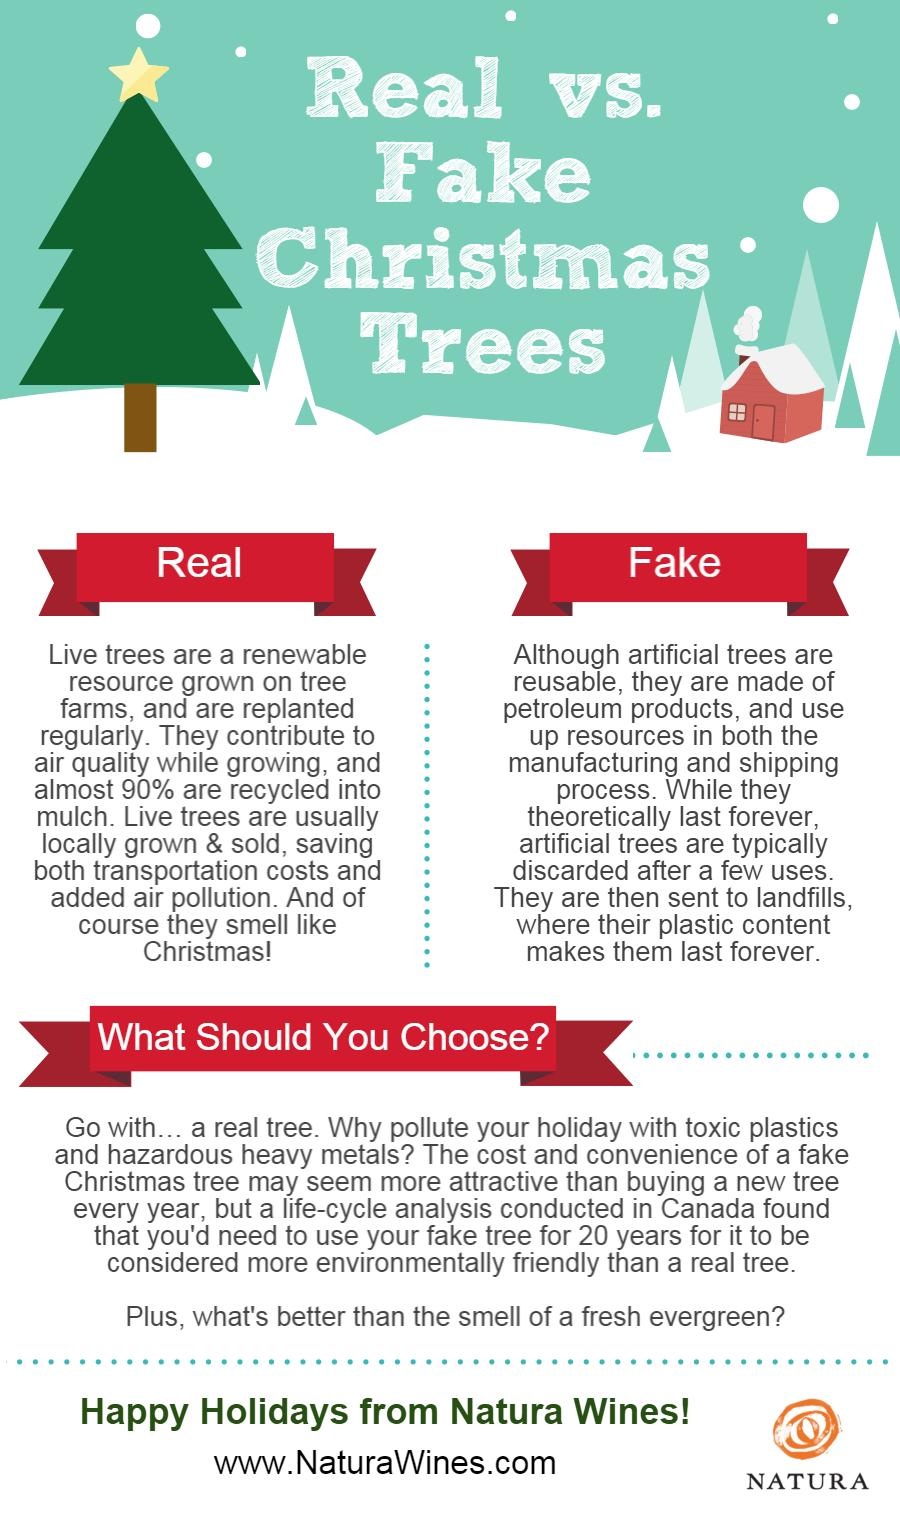 How Much Do Real Christmas Trees Cost.Real Vs Fake Christmas Trees Infographic